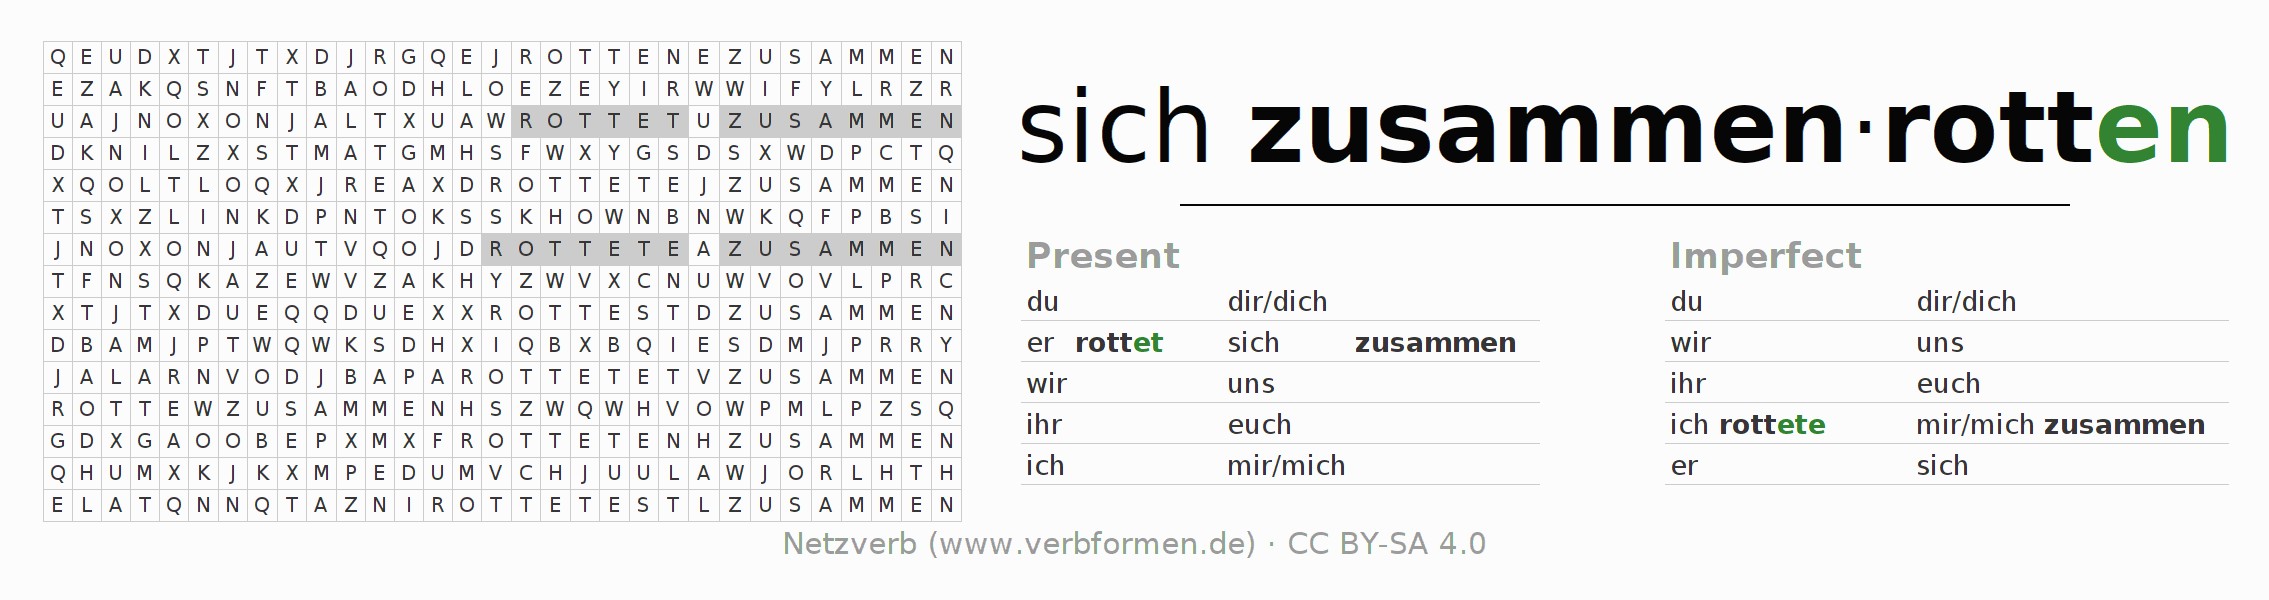 Word search puzzle for the conjugation of the verb sich zusammenrotten